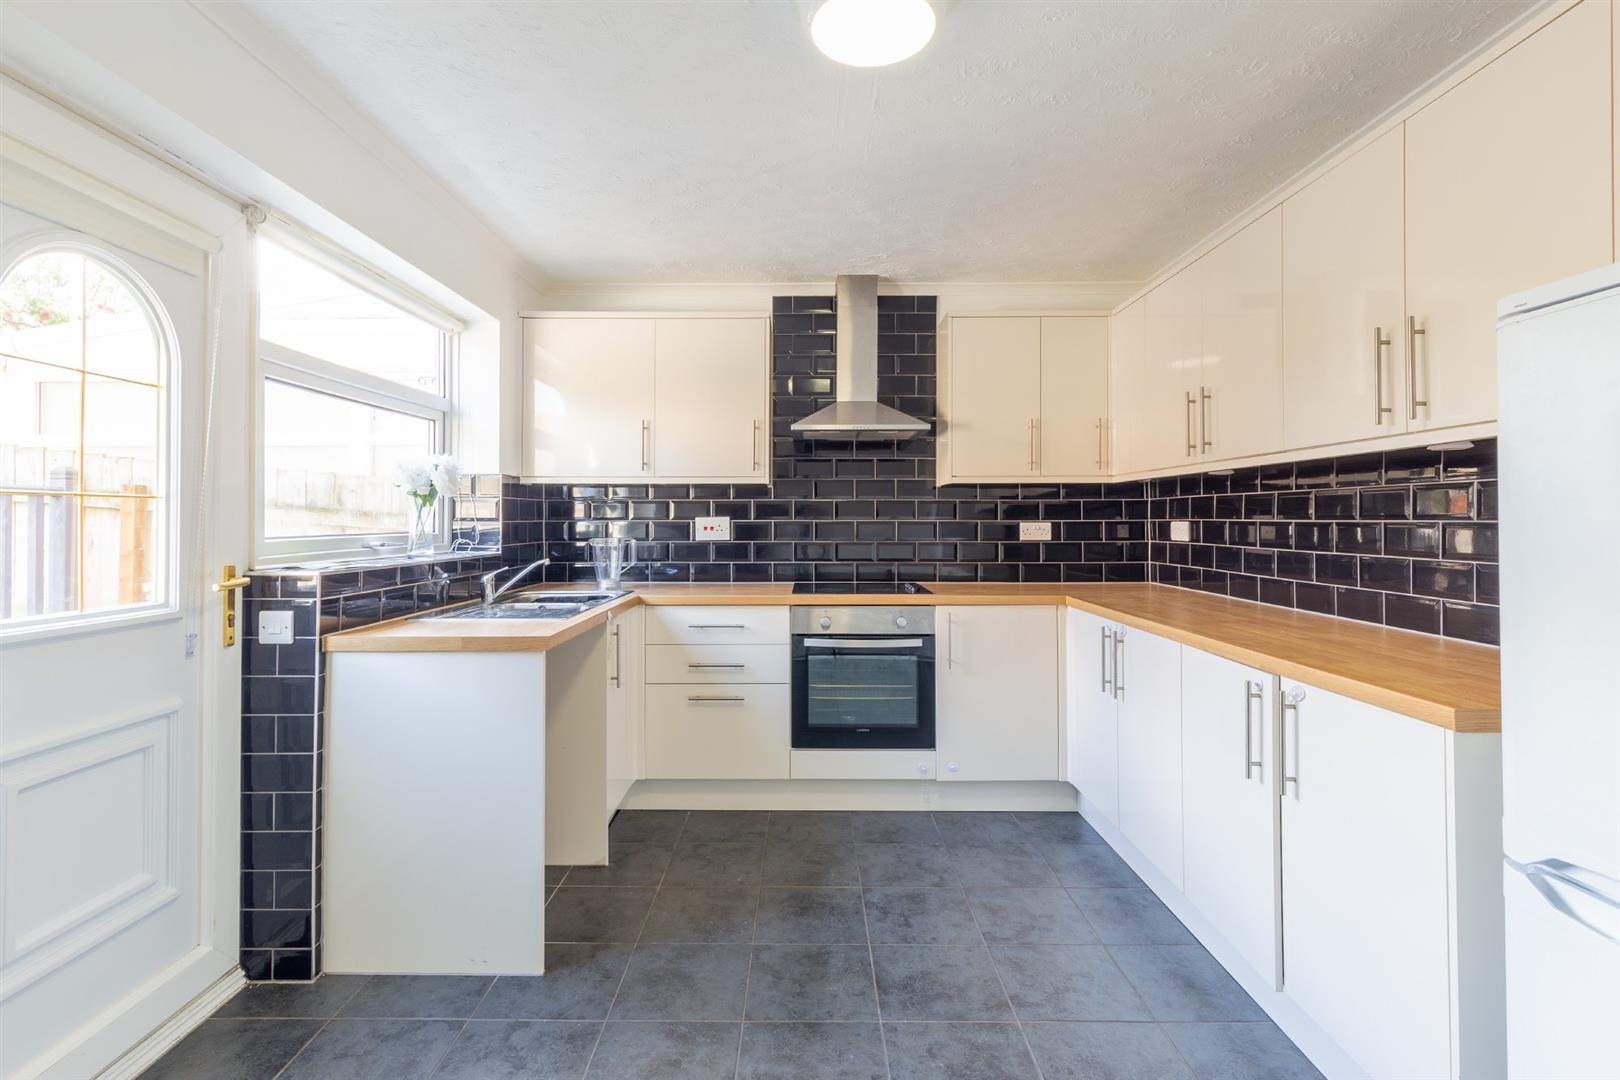 2 bed terraced house to rent in Chirton, NE29 7HJ, NE29